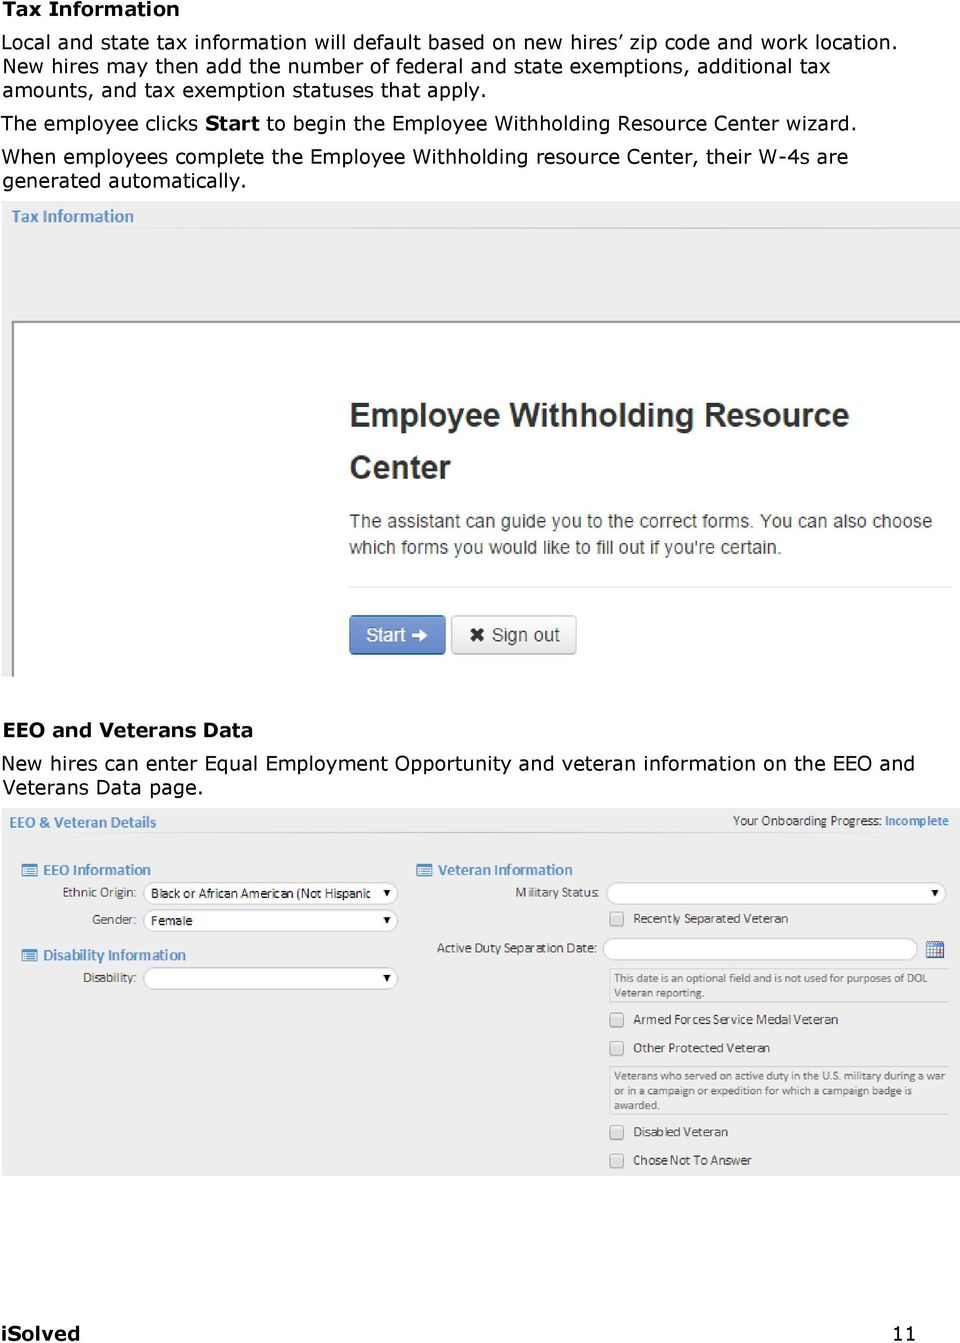 The employee clicks Start to begin the Employee Withholding Resource Center wizard.